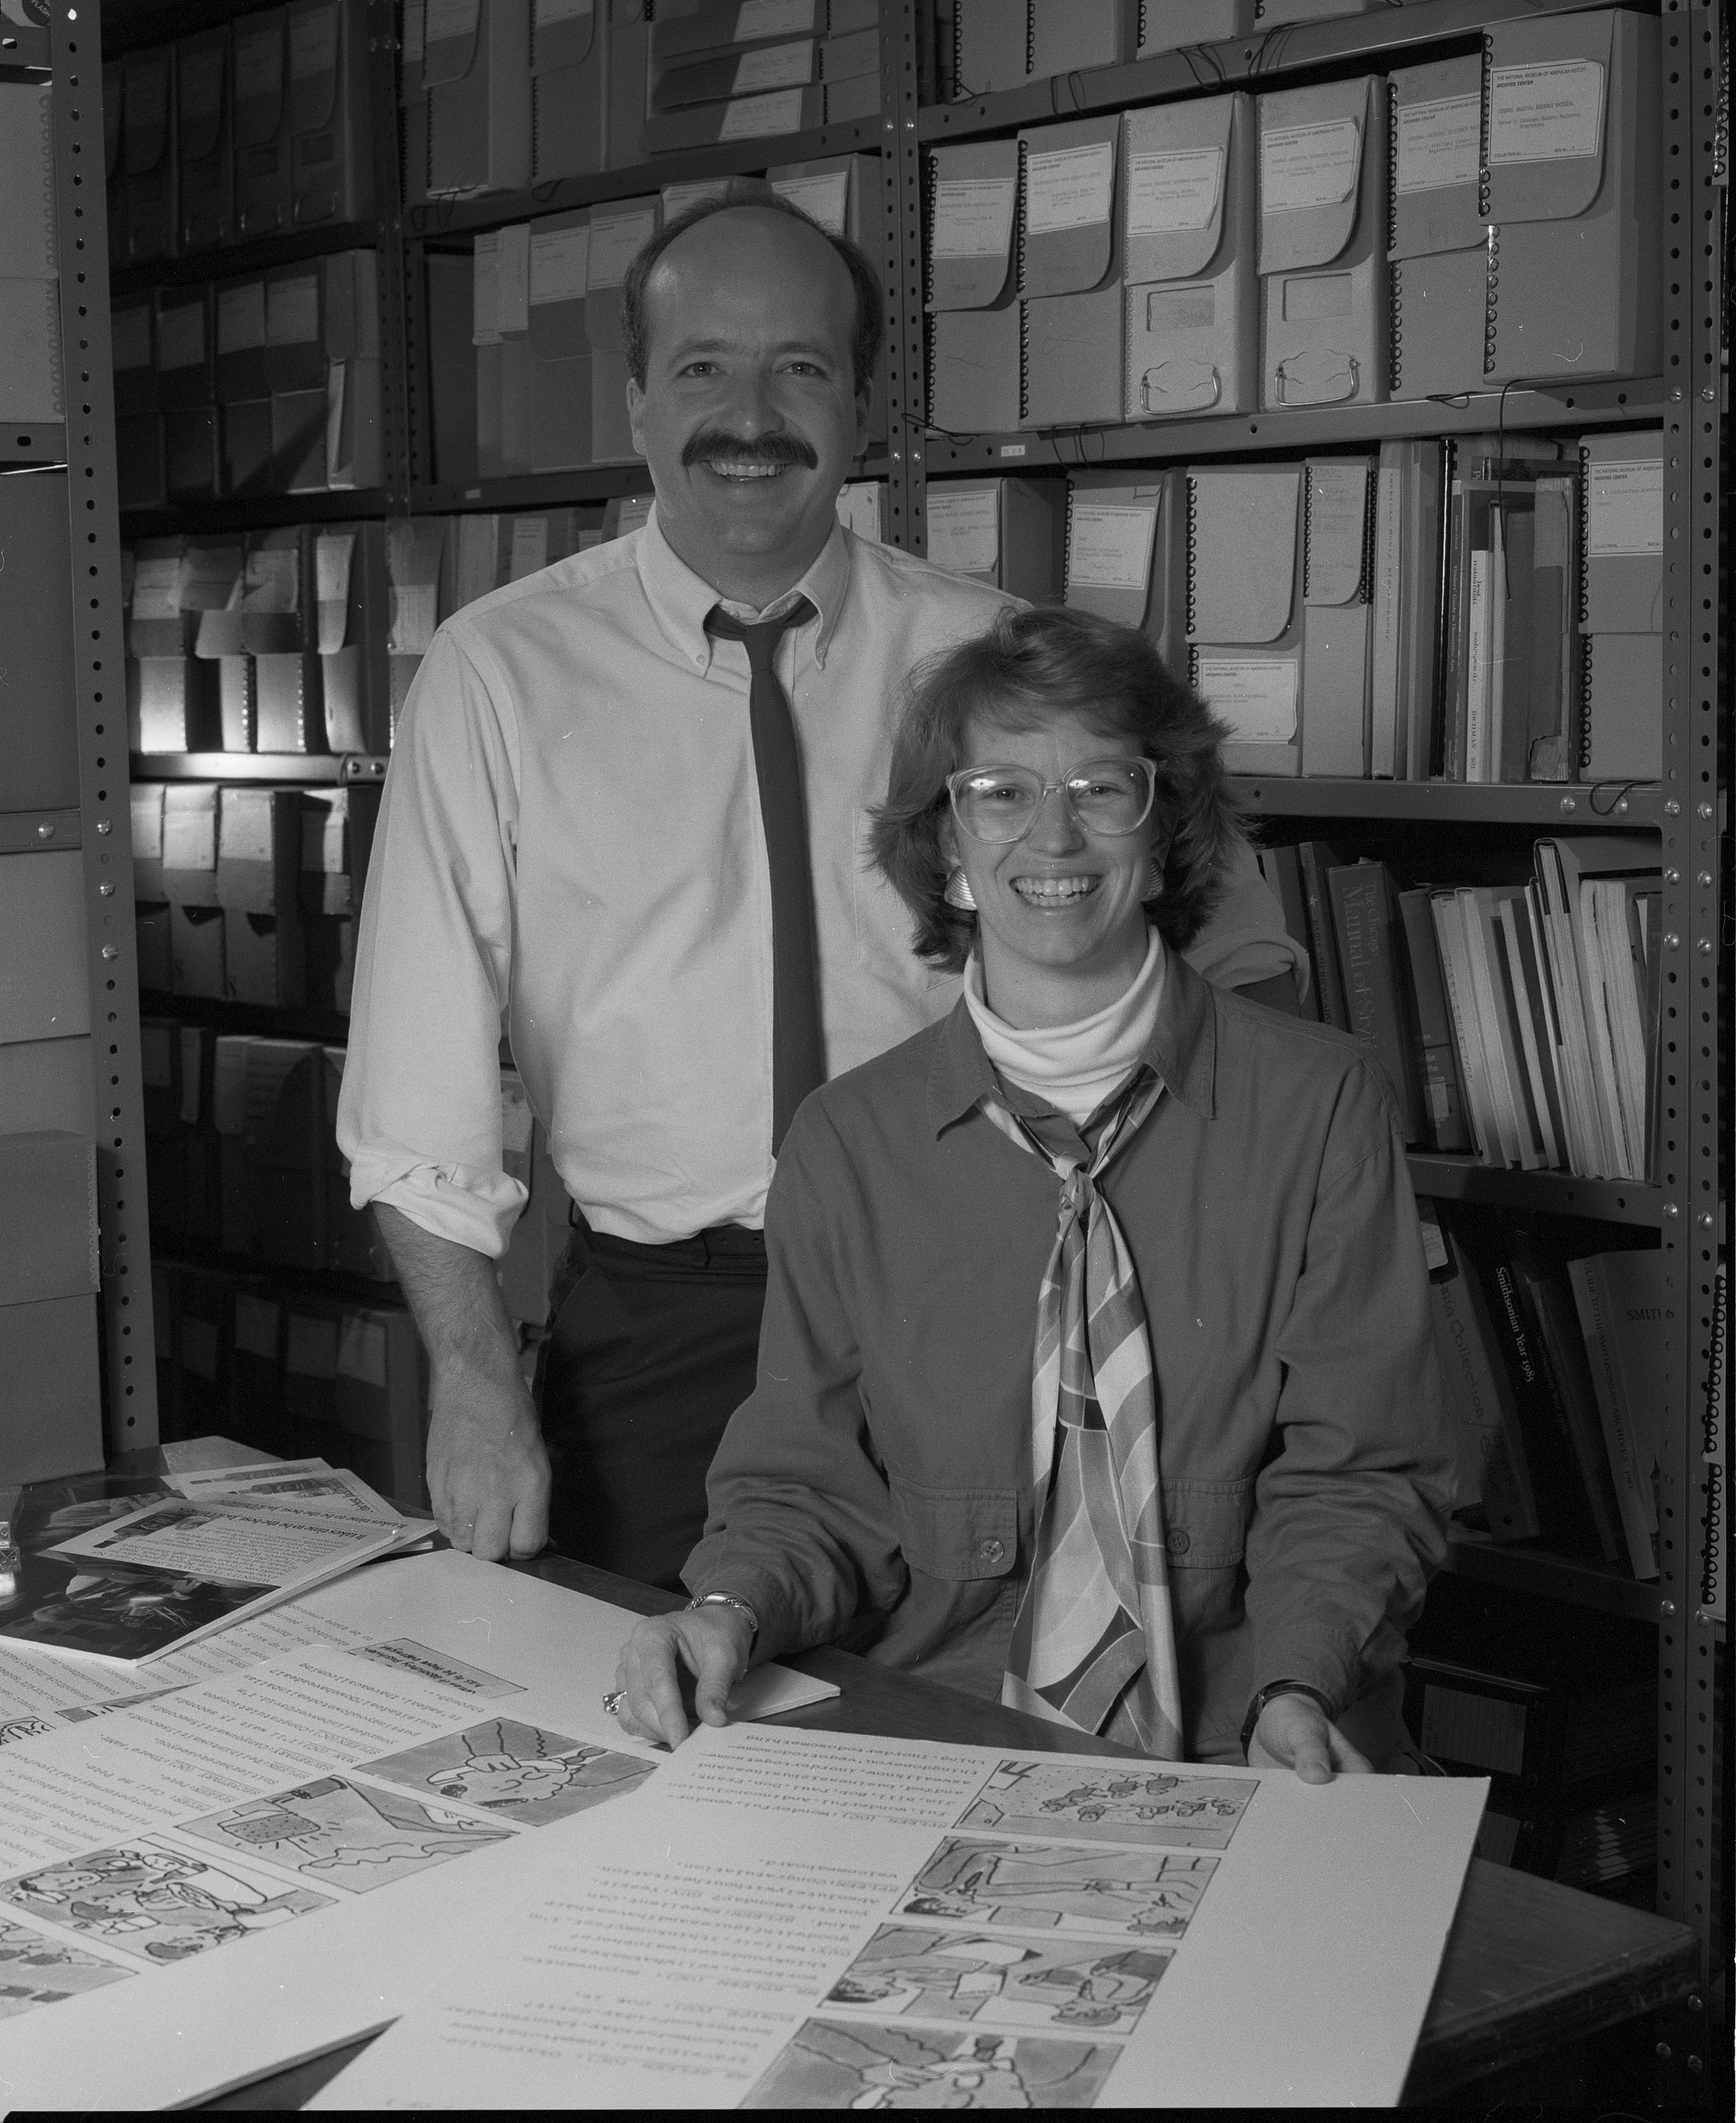 A man and woman, Flaherty, look over story boards on a desk.